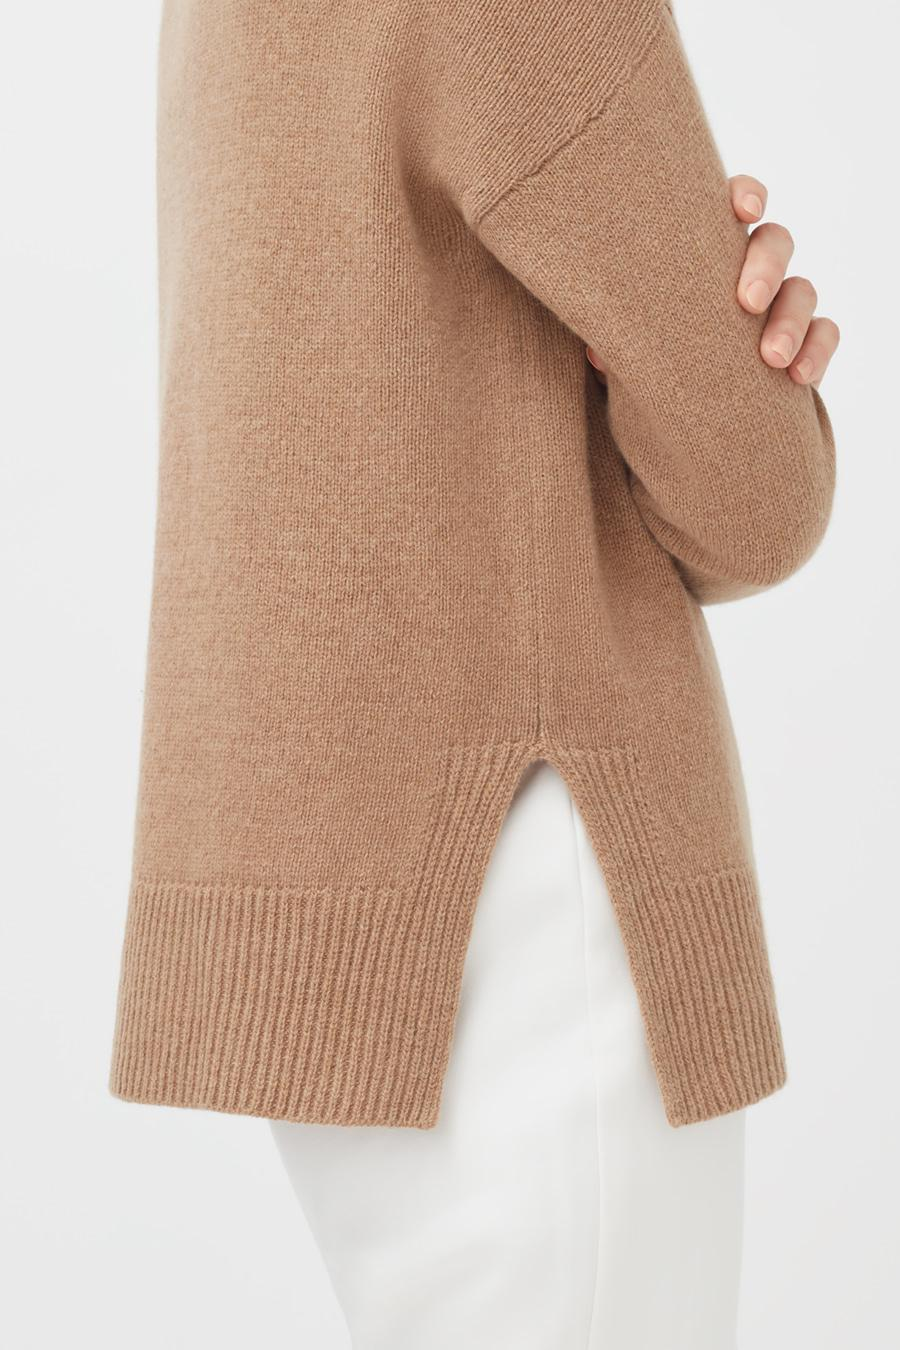 Women's Recycled Crewneck Sweater in Camel | Size: 3